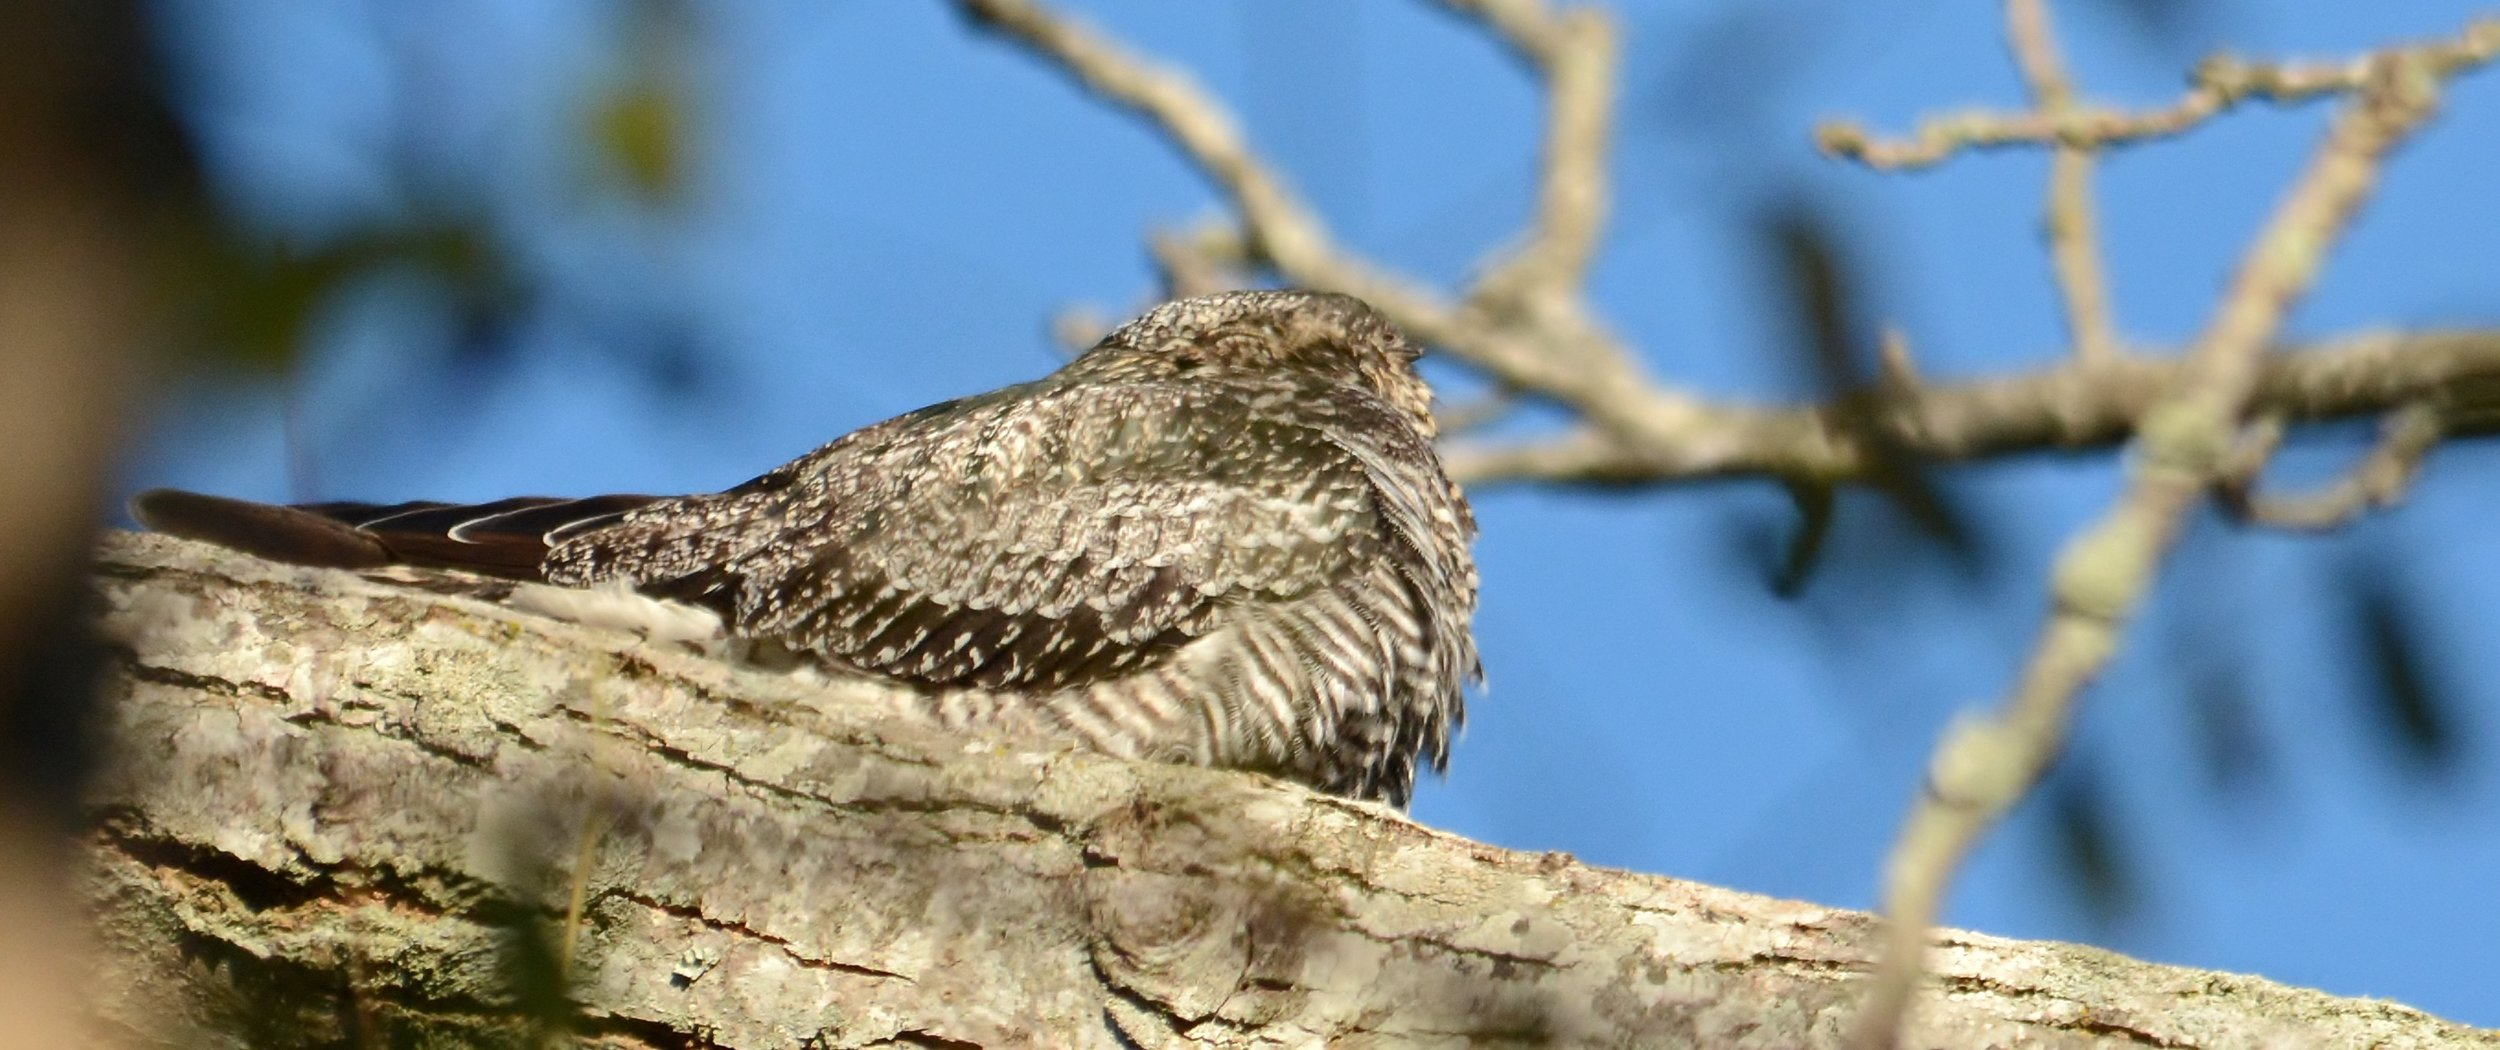 Common Nighthawk Cape Addicks May 10-11-15.jpg